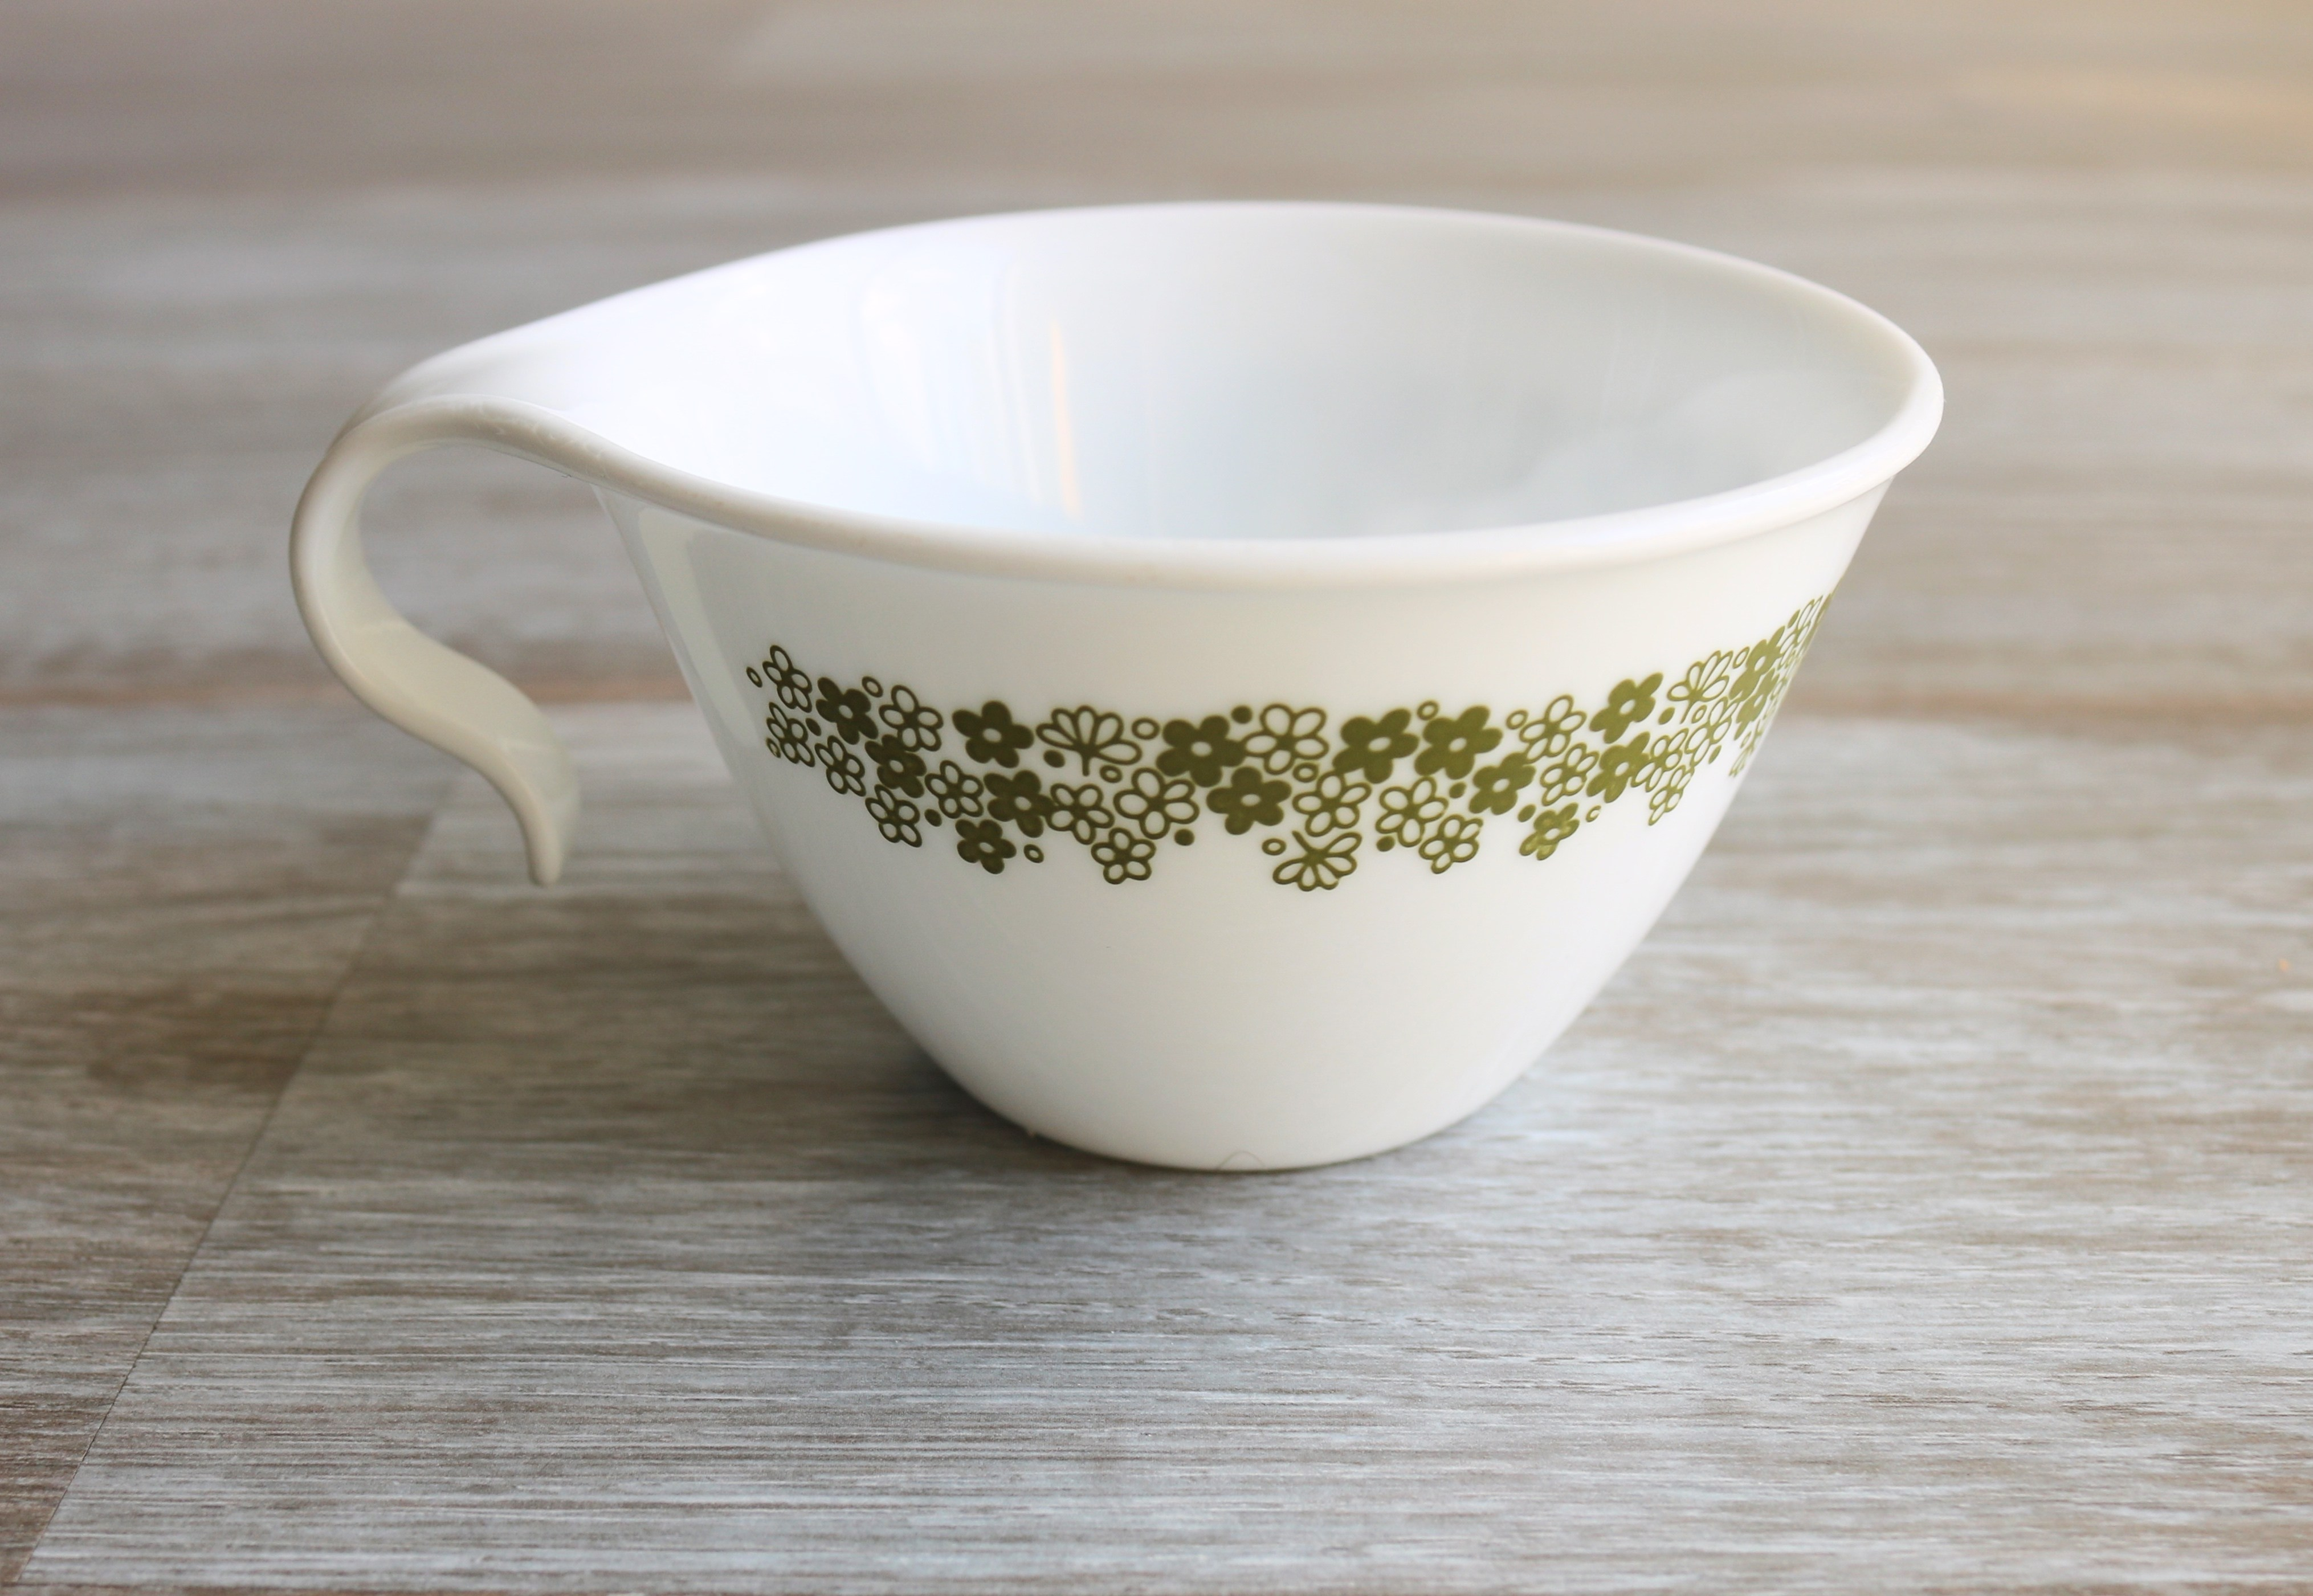 Cup that doesn't break easily to make garlic oil infusion. Treats ear infections.